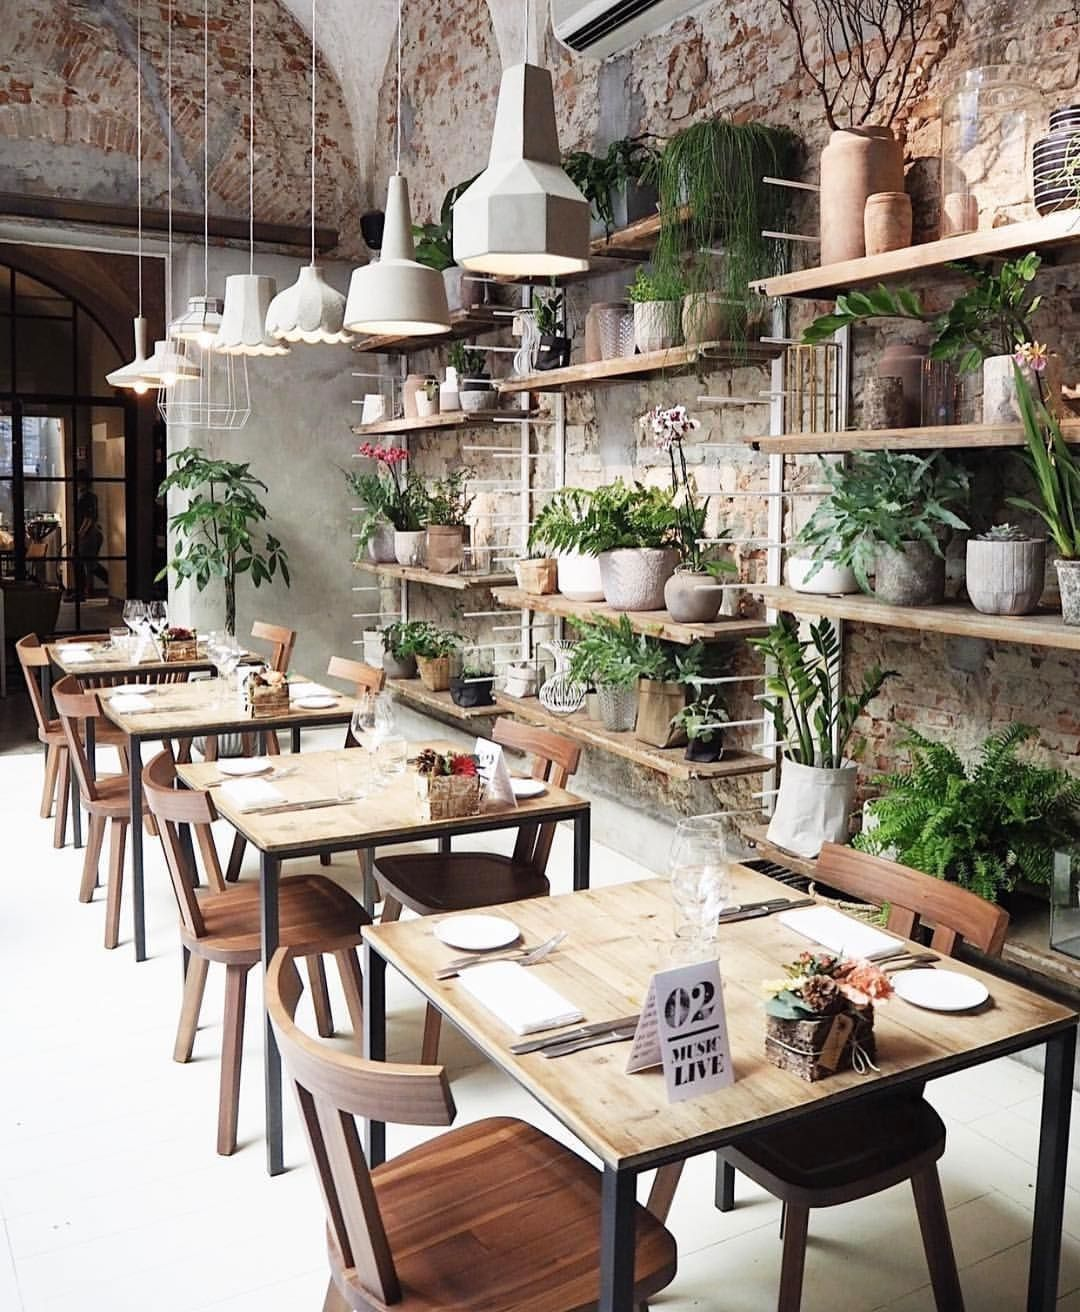 30+ Stunning Coffee Shop Design Ideas That Most Inspiring